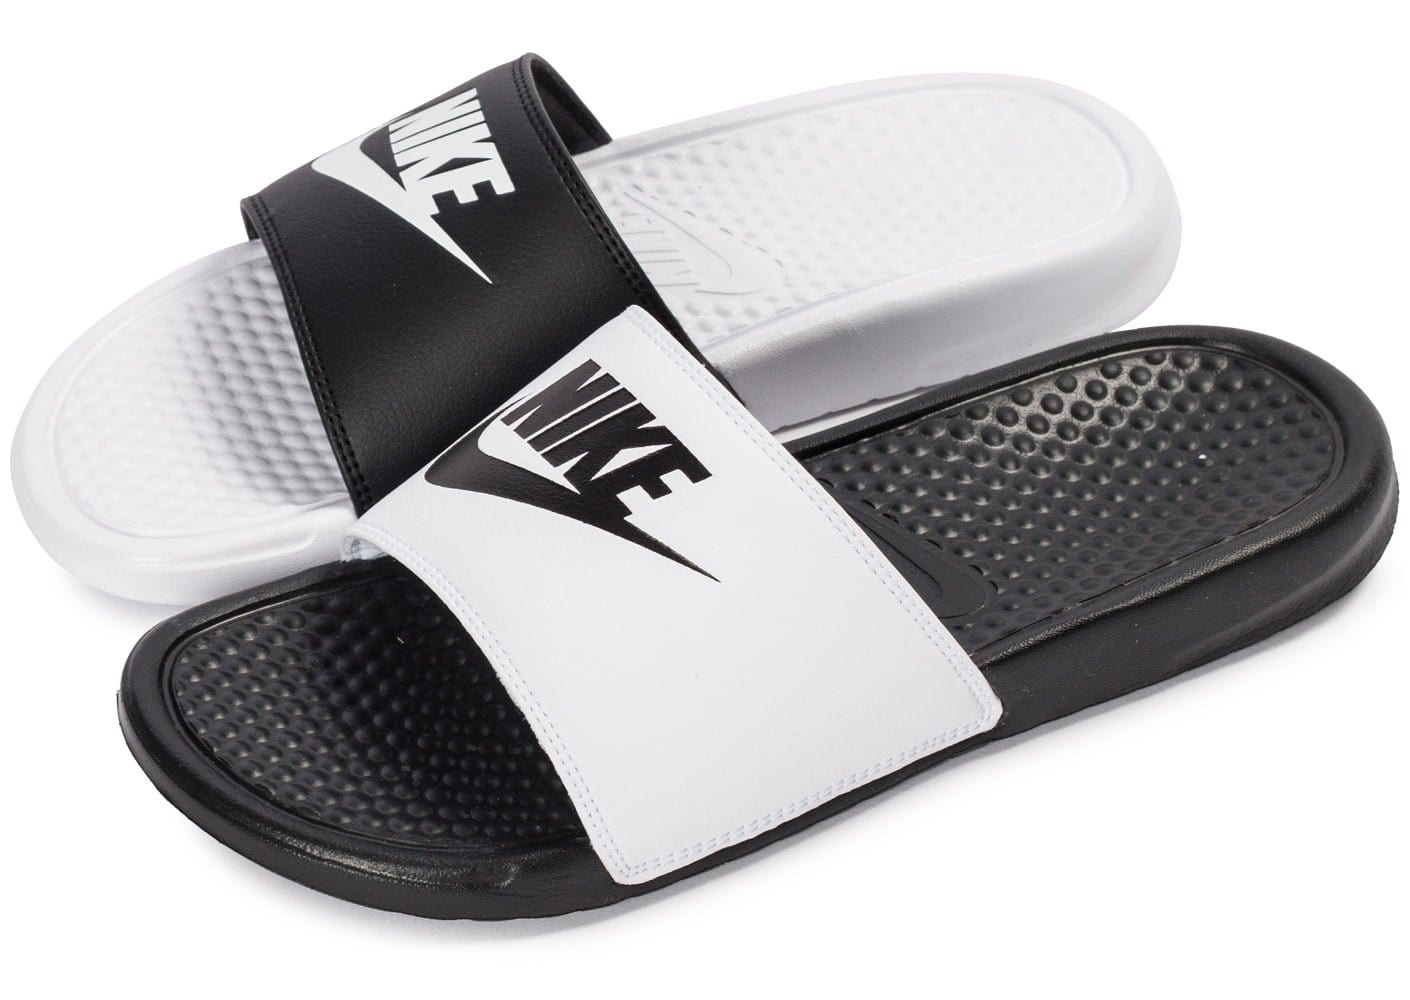 Homme Chaussures Wipe Nike formation Blanches 5sjow Benassi wOqtrZO